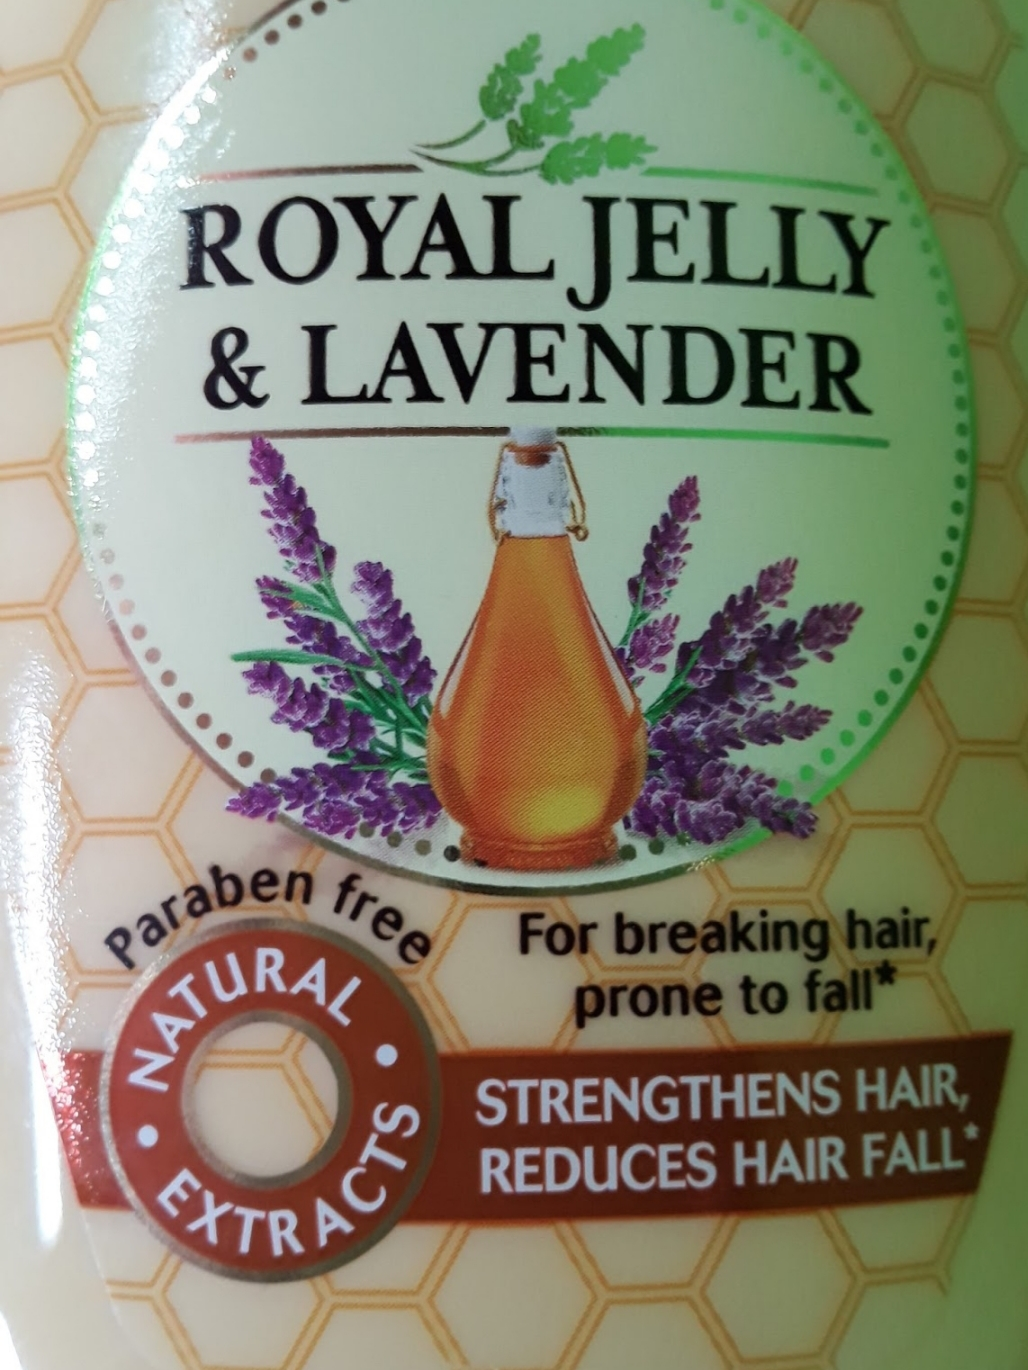 Garnier Ultra Blends Anti Hairfall Shampoo Royal Jelly & Lavender pic 2-Good anti hair fall shampoo-By shruti_joshi